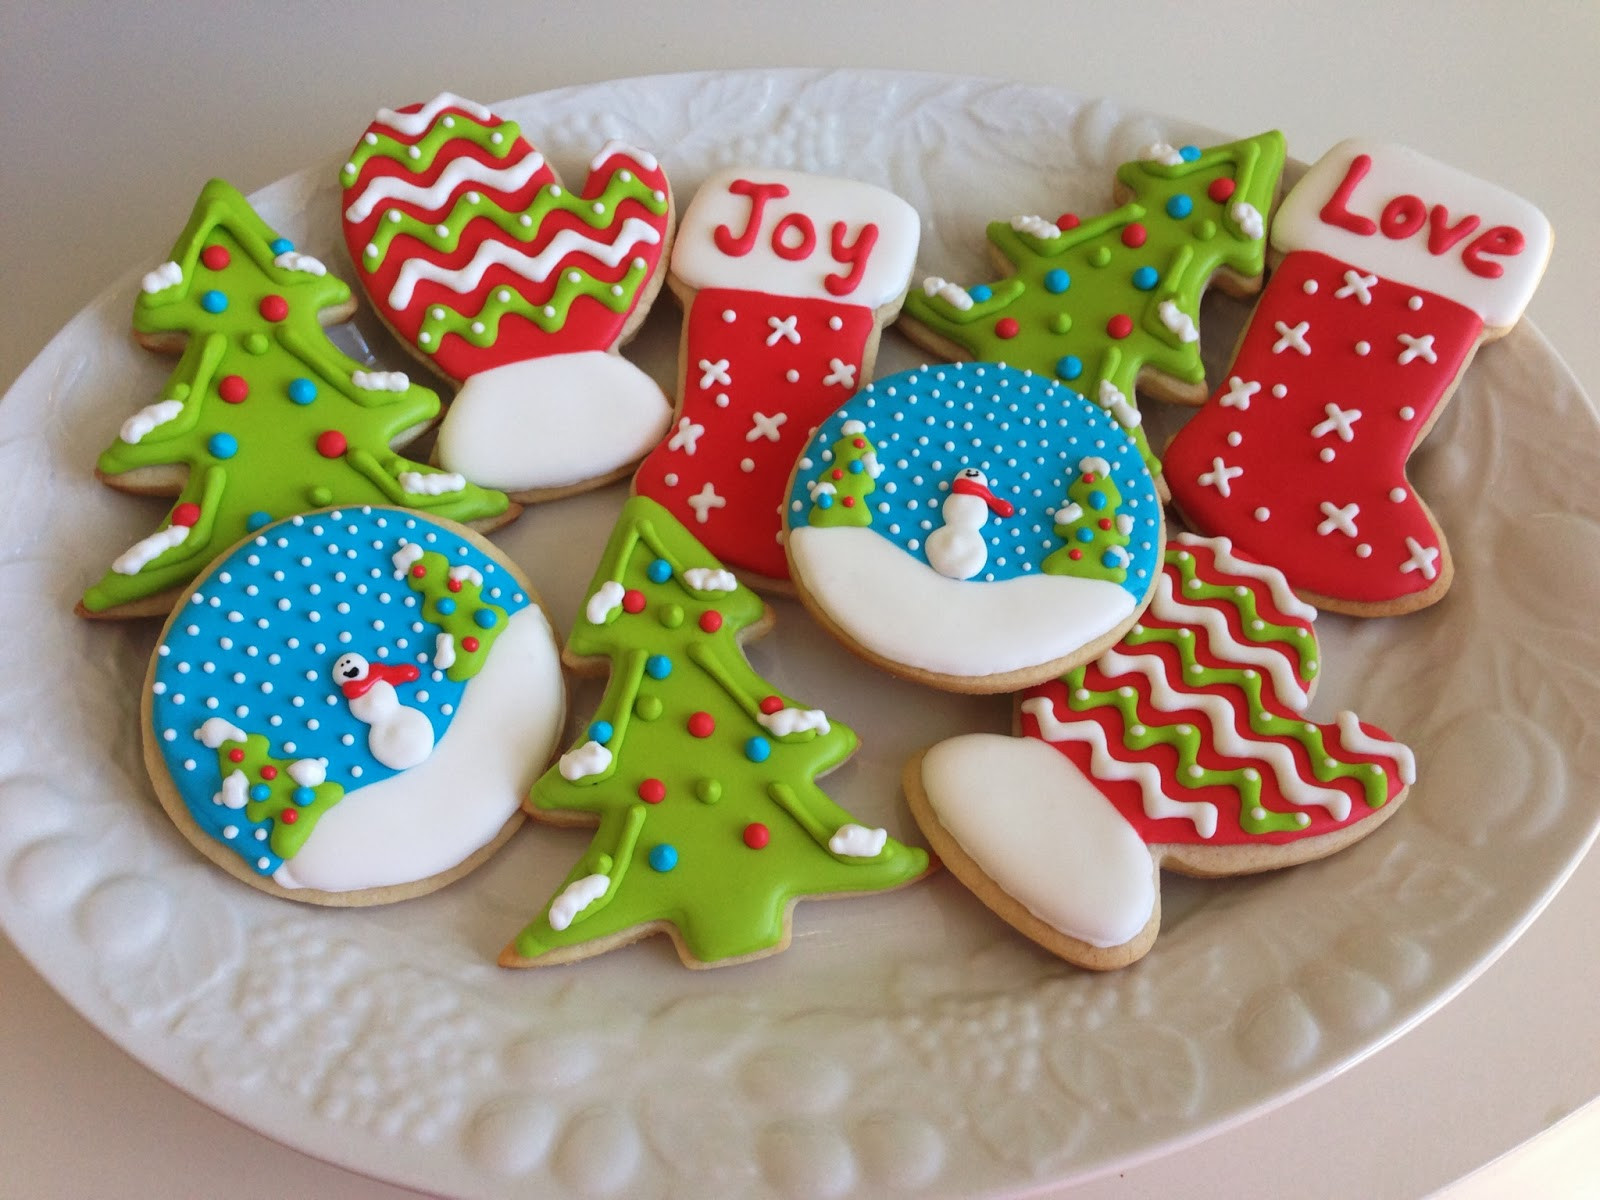 Royal Icing Christmas Cookie  monograms & cake Christmas Cut Out Sugar Cookies with